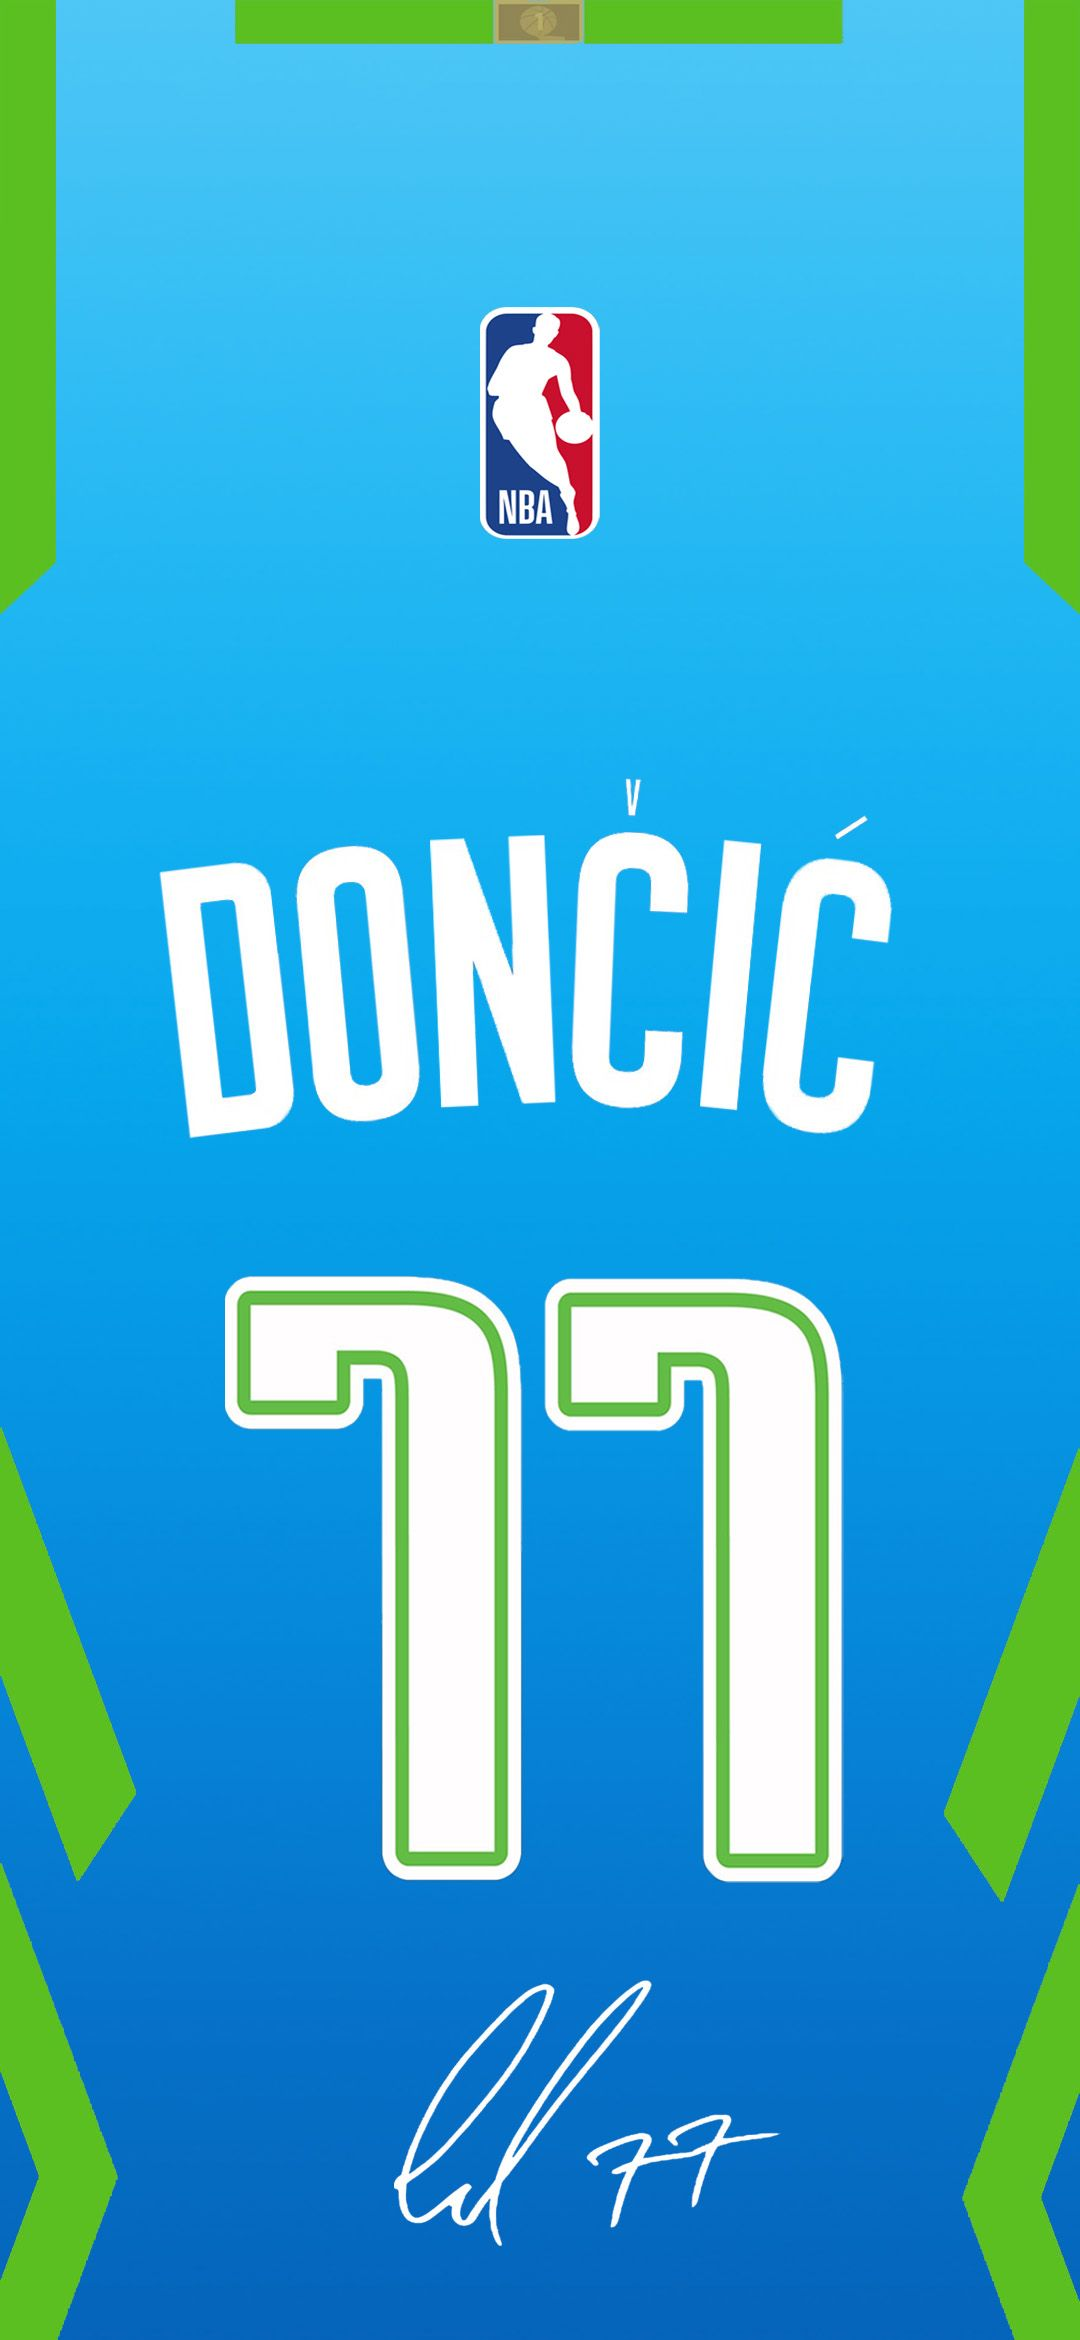 Doncic City Edition Kit Phone Wallpaper In 2020 Mavericks Basketball Basketball Wallpaper Nba Wallpapers